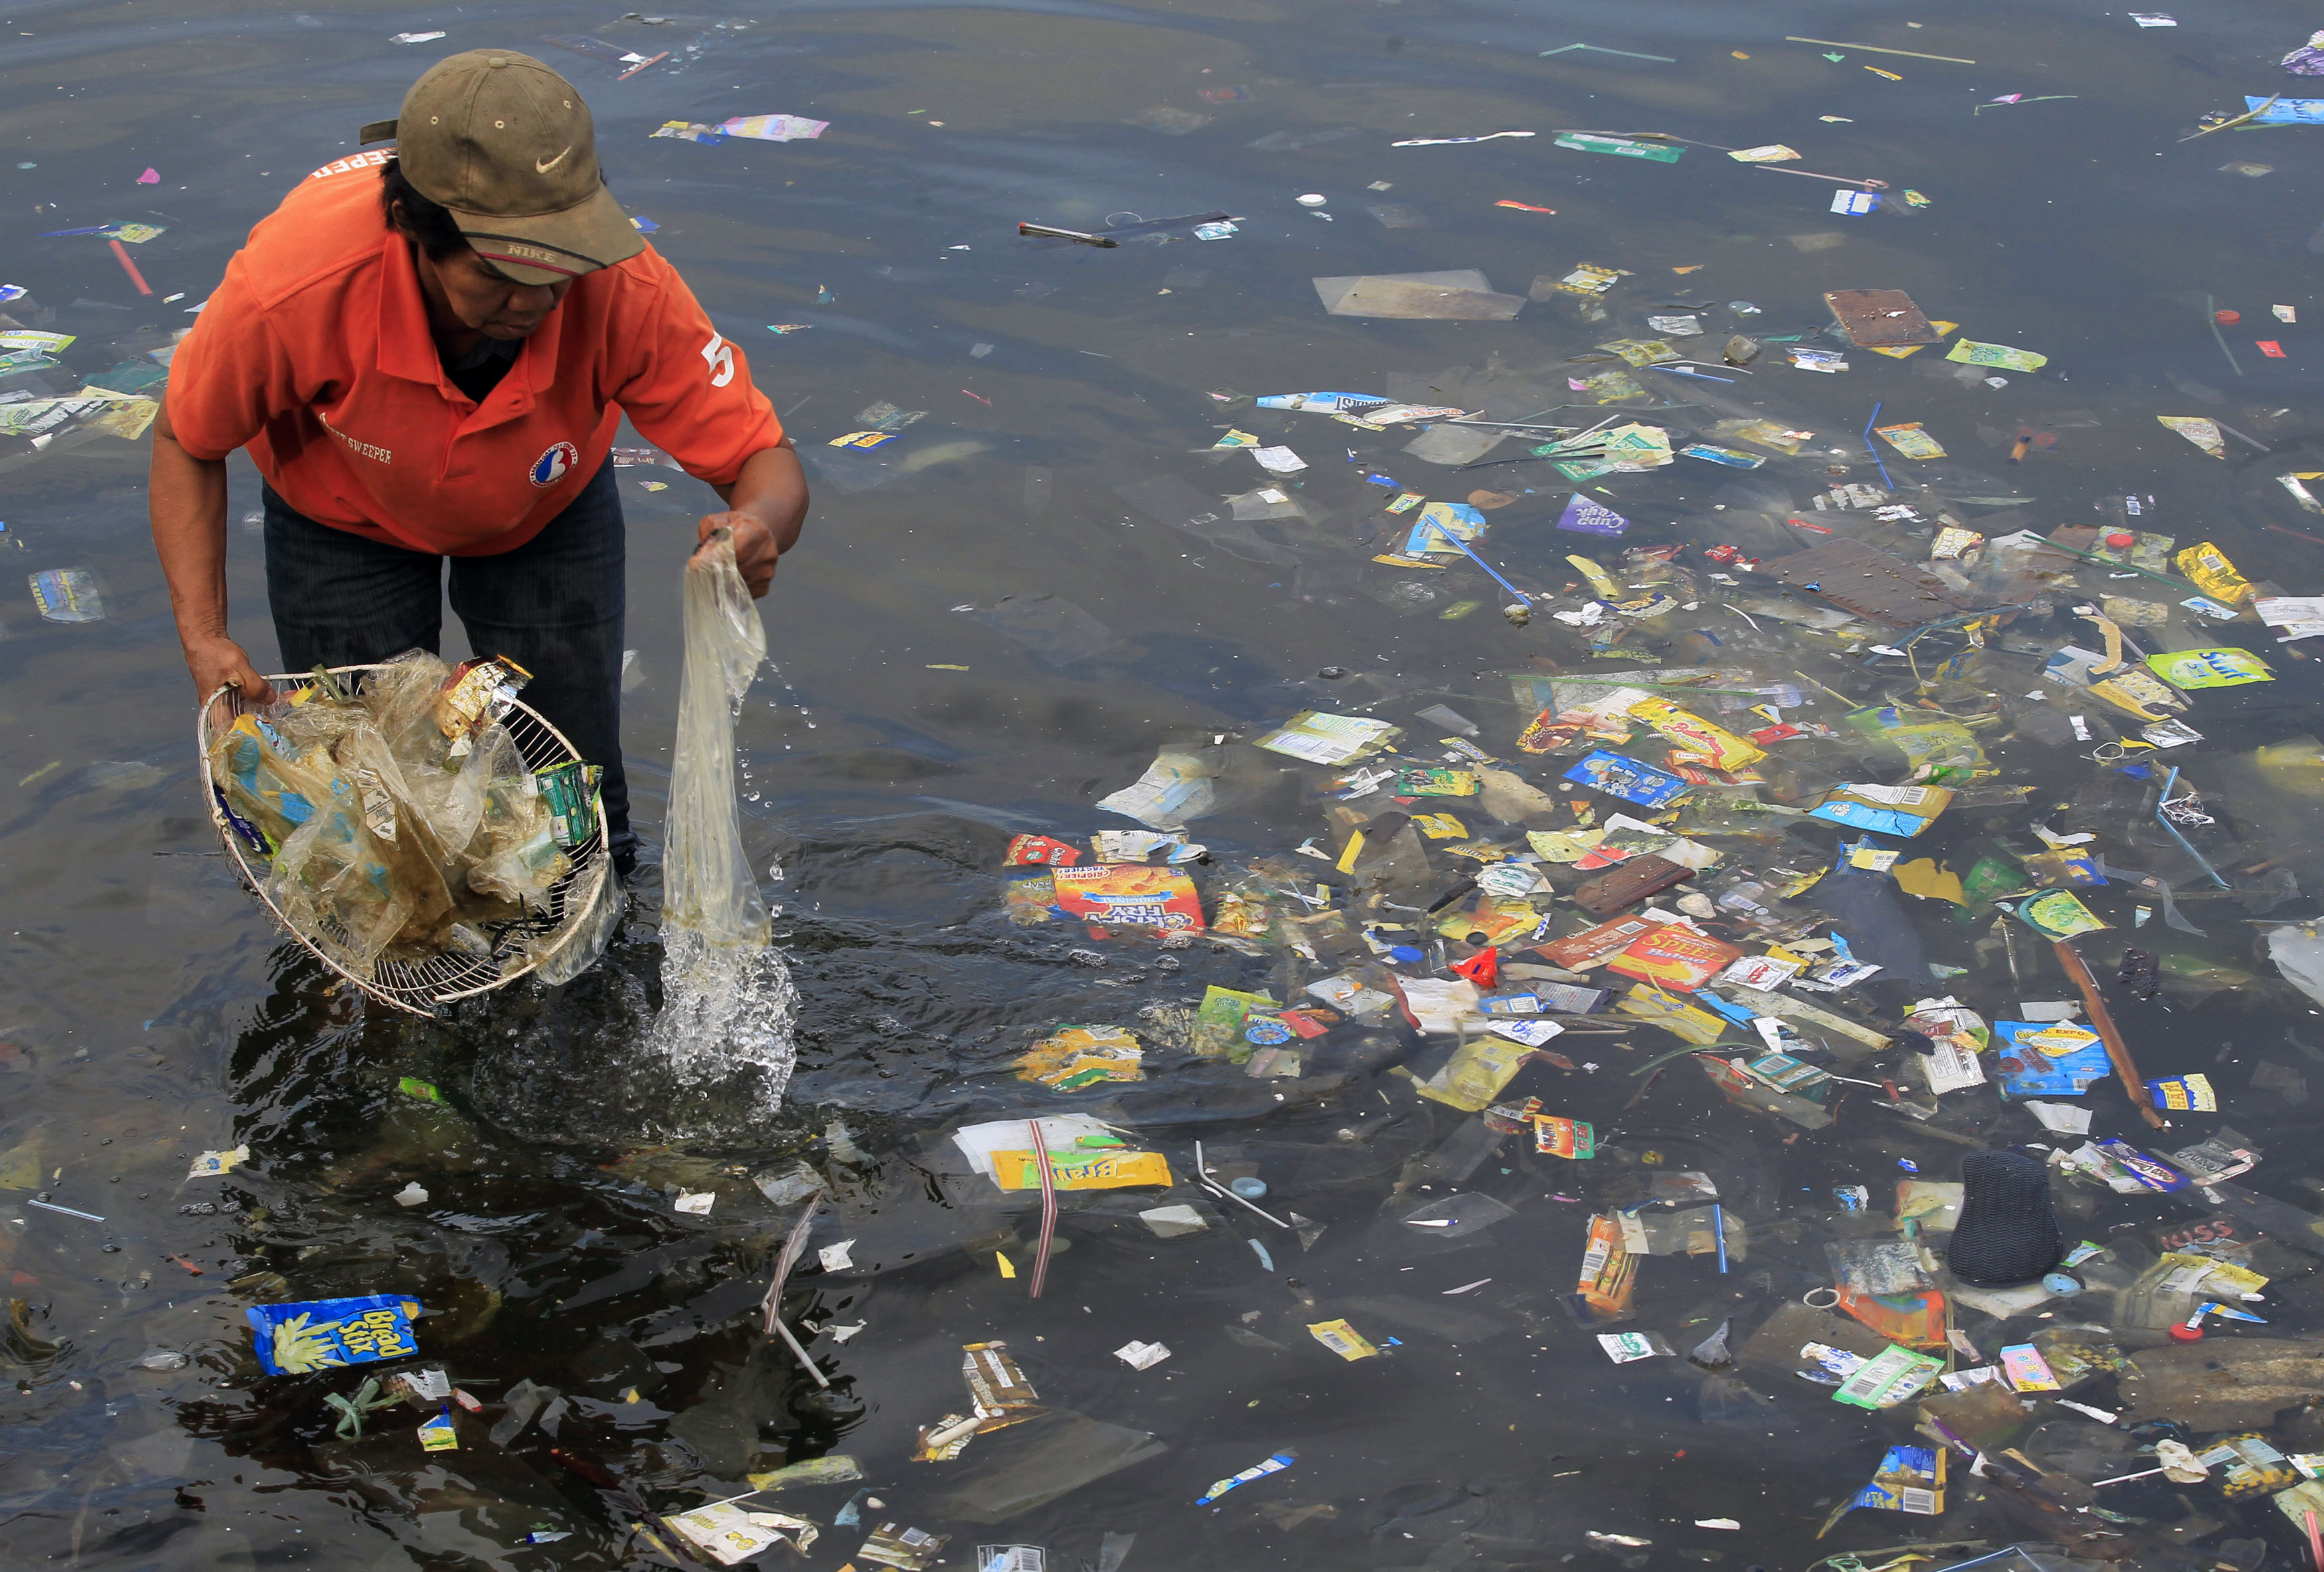 A government sanitary worker collects and segregates garbage in Manila bay